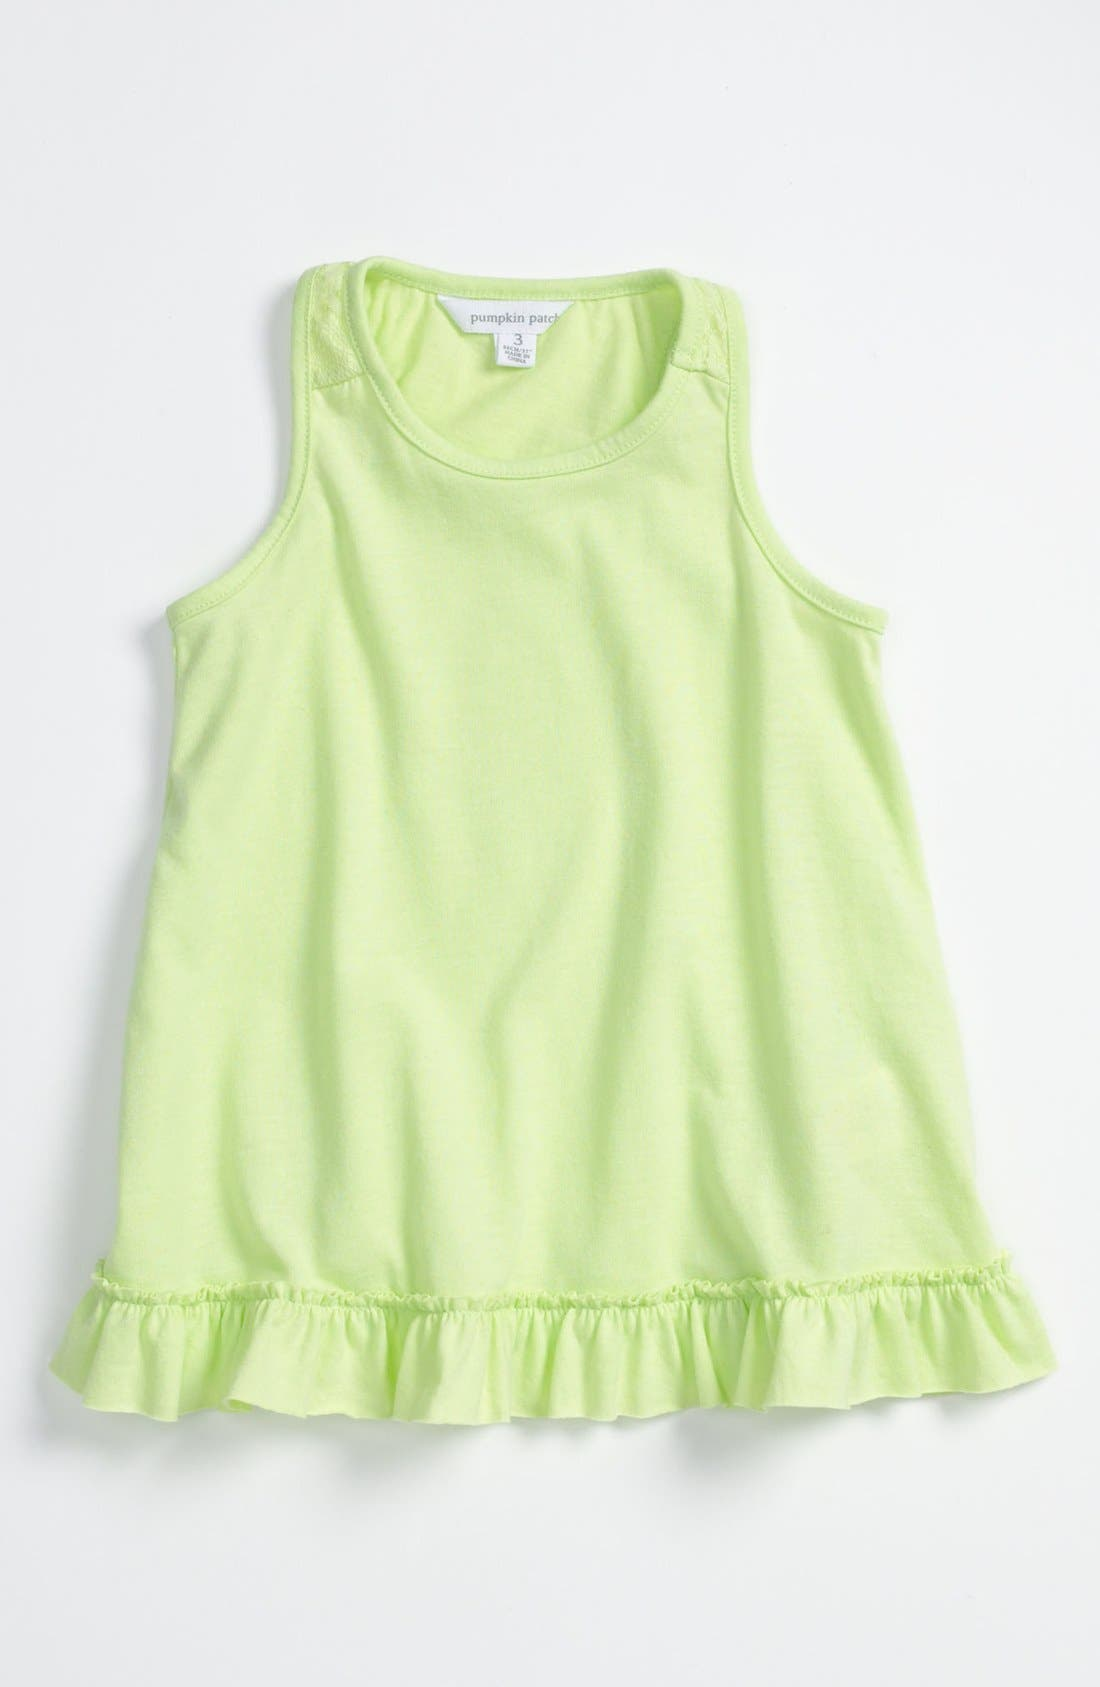 Alternate Image 1 Selected - Pumpkin Patch Tank Top (Toddler)